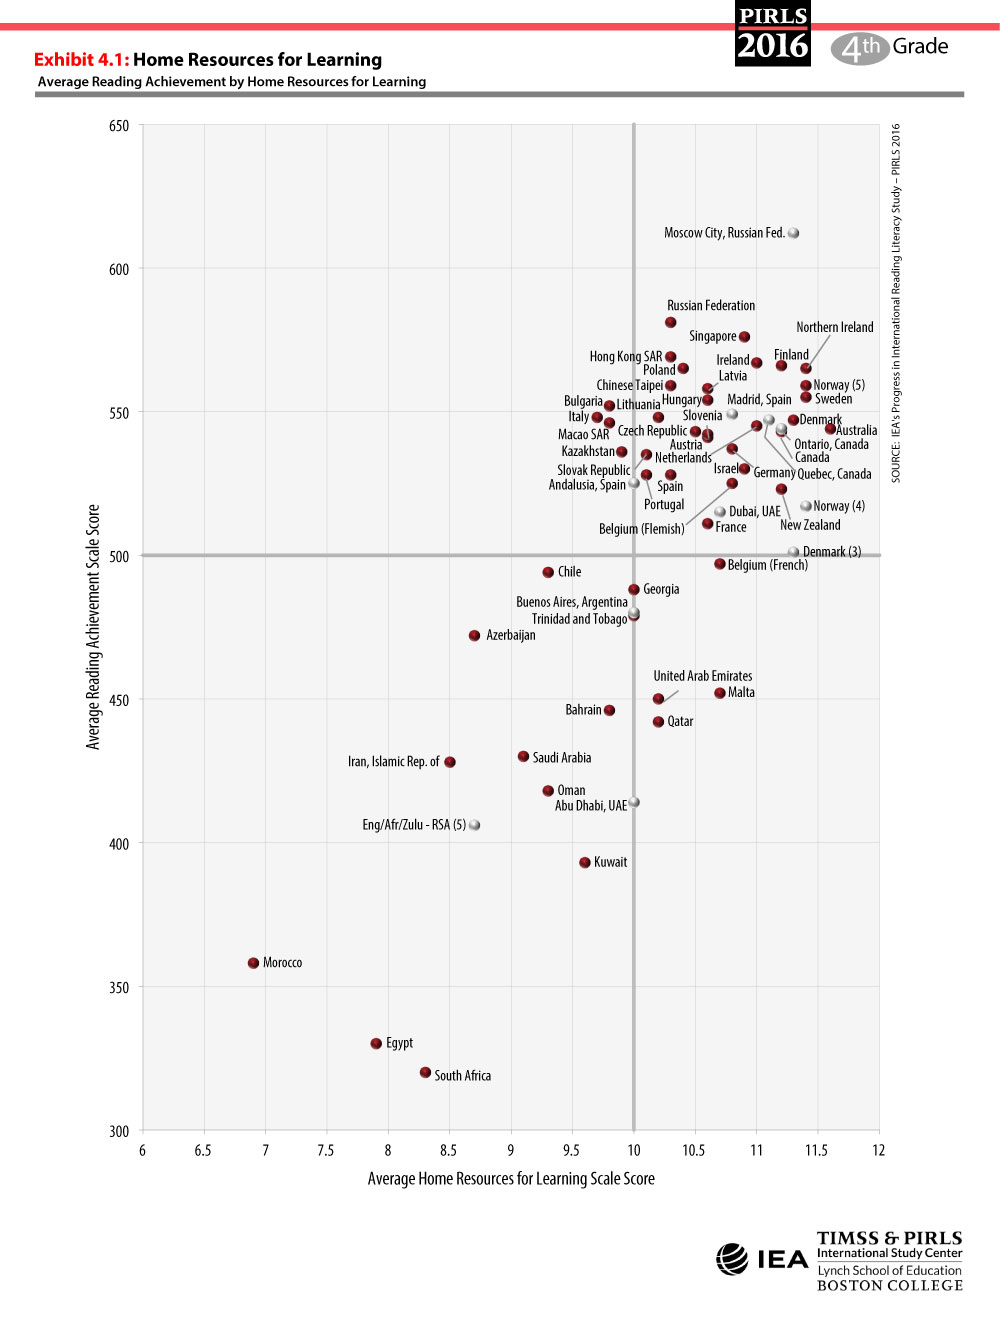 Home Resources for Learning Scatterplot